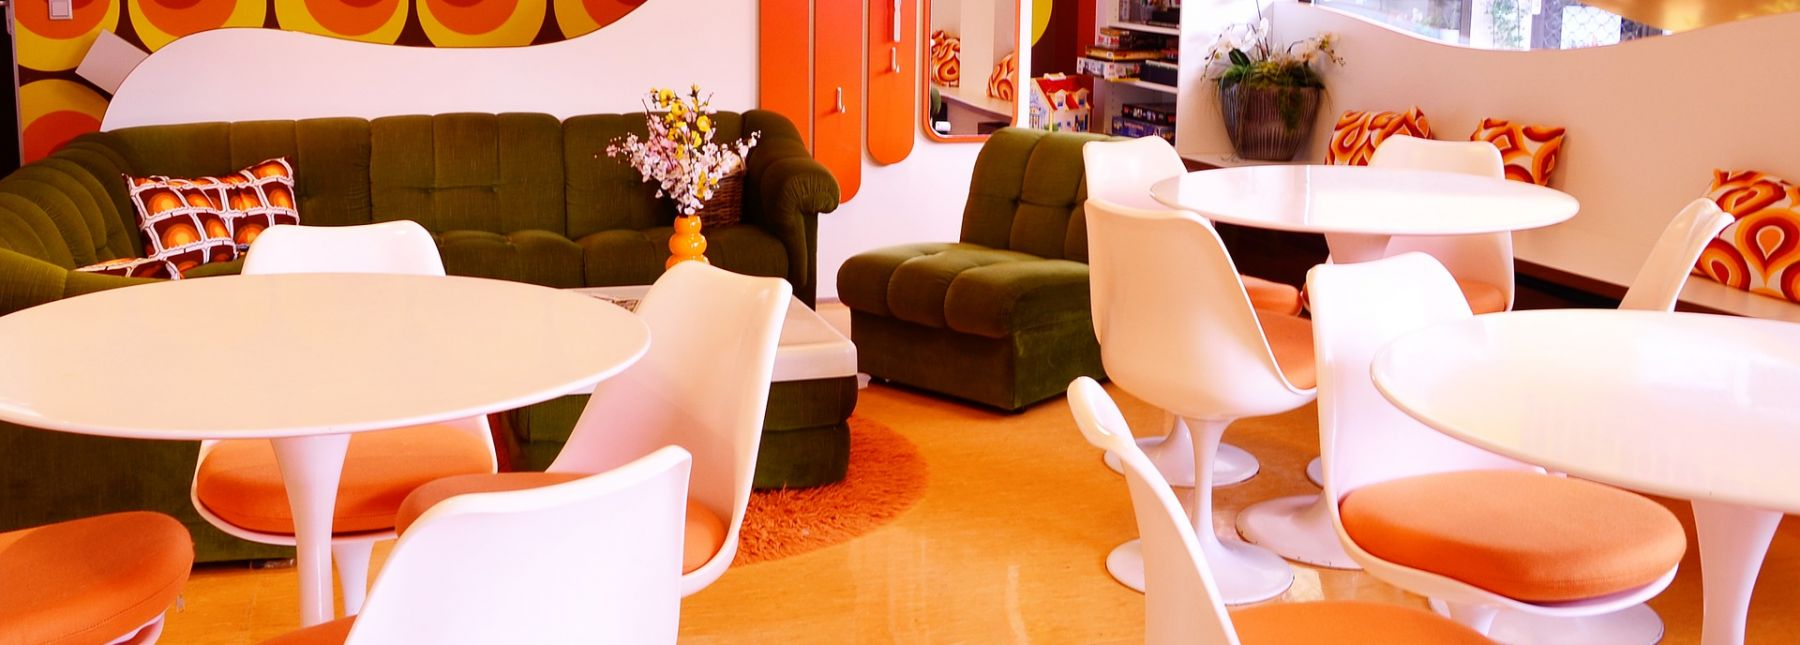 A room with tulip chairs and tables